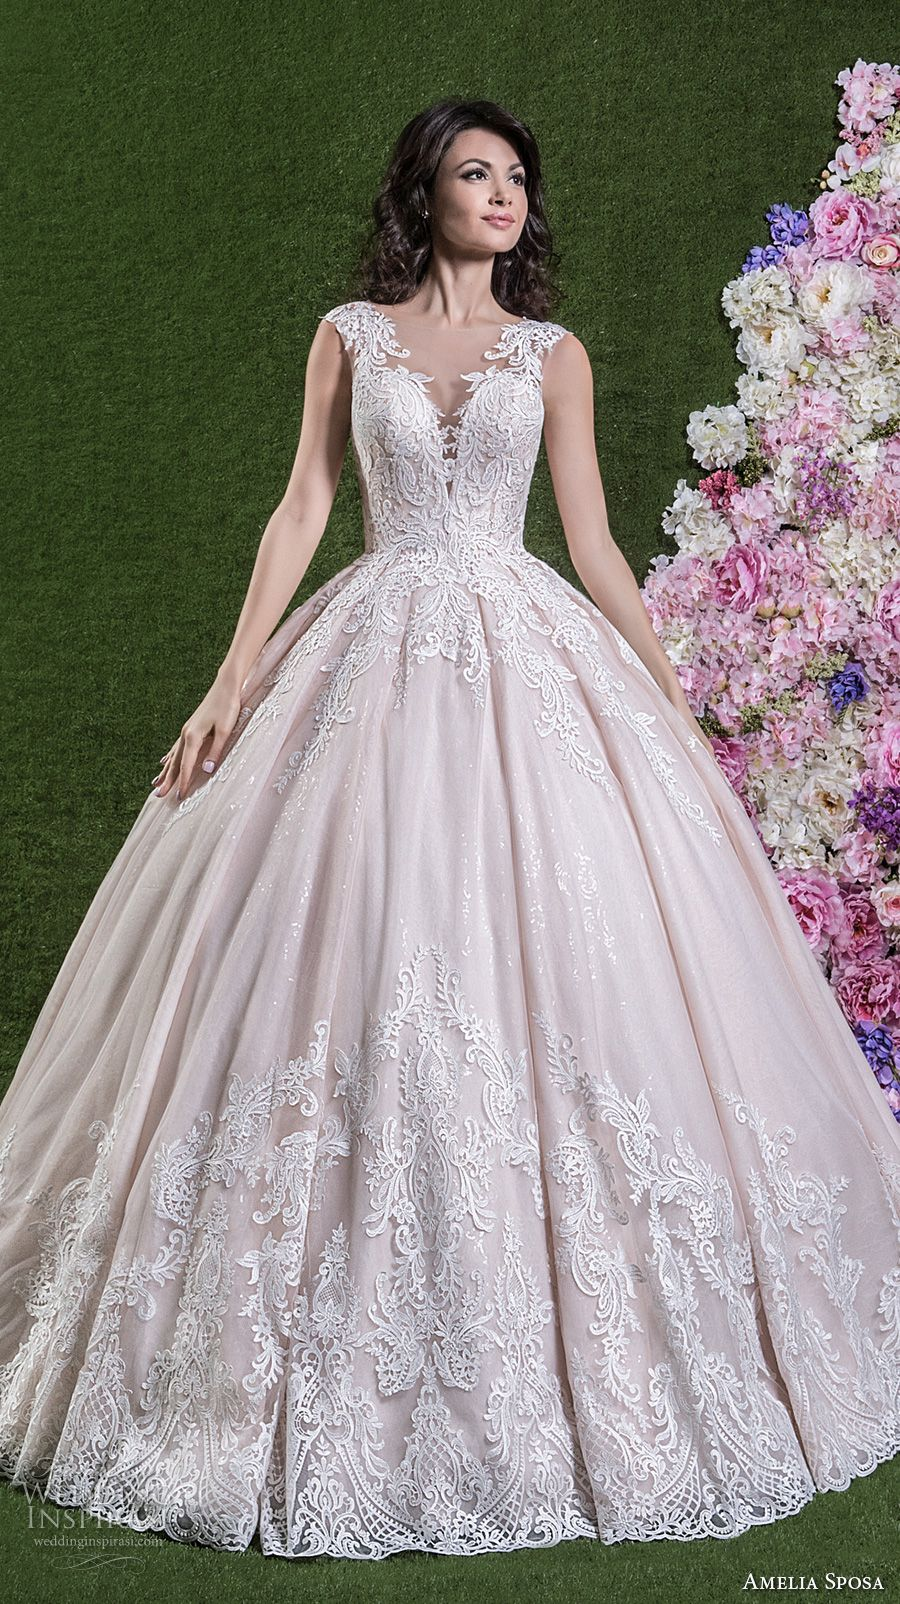 Amelia sposa wedding dresses amelia sposa ball gowns and bodice